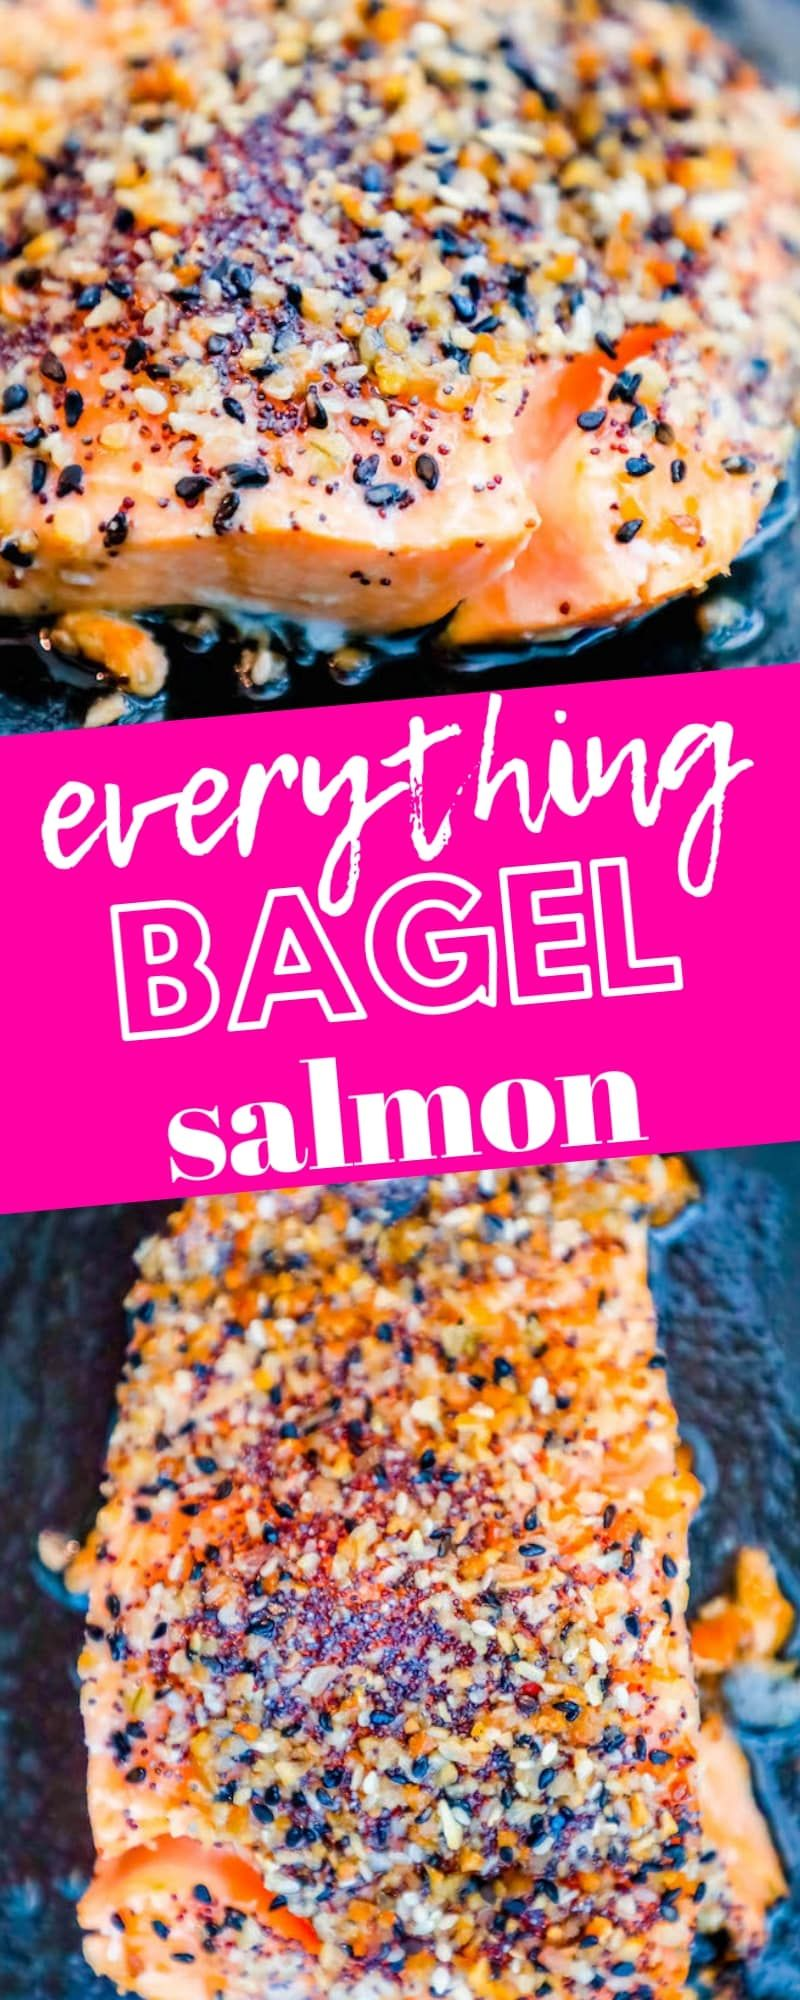 Easy Baked Everything Salmon Recipe - Sweet Cs Designs